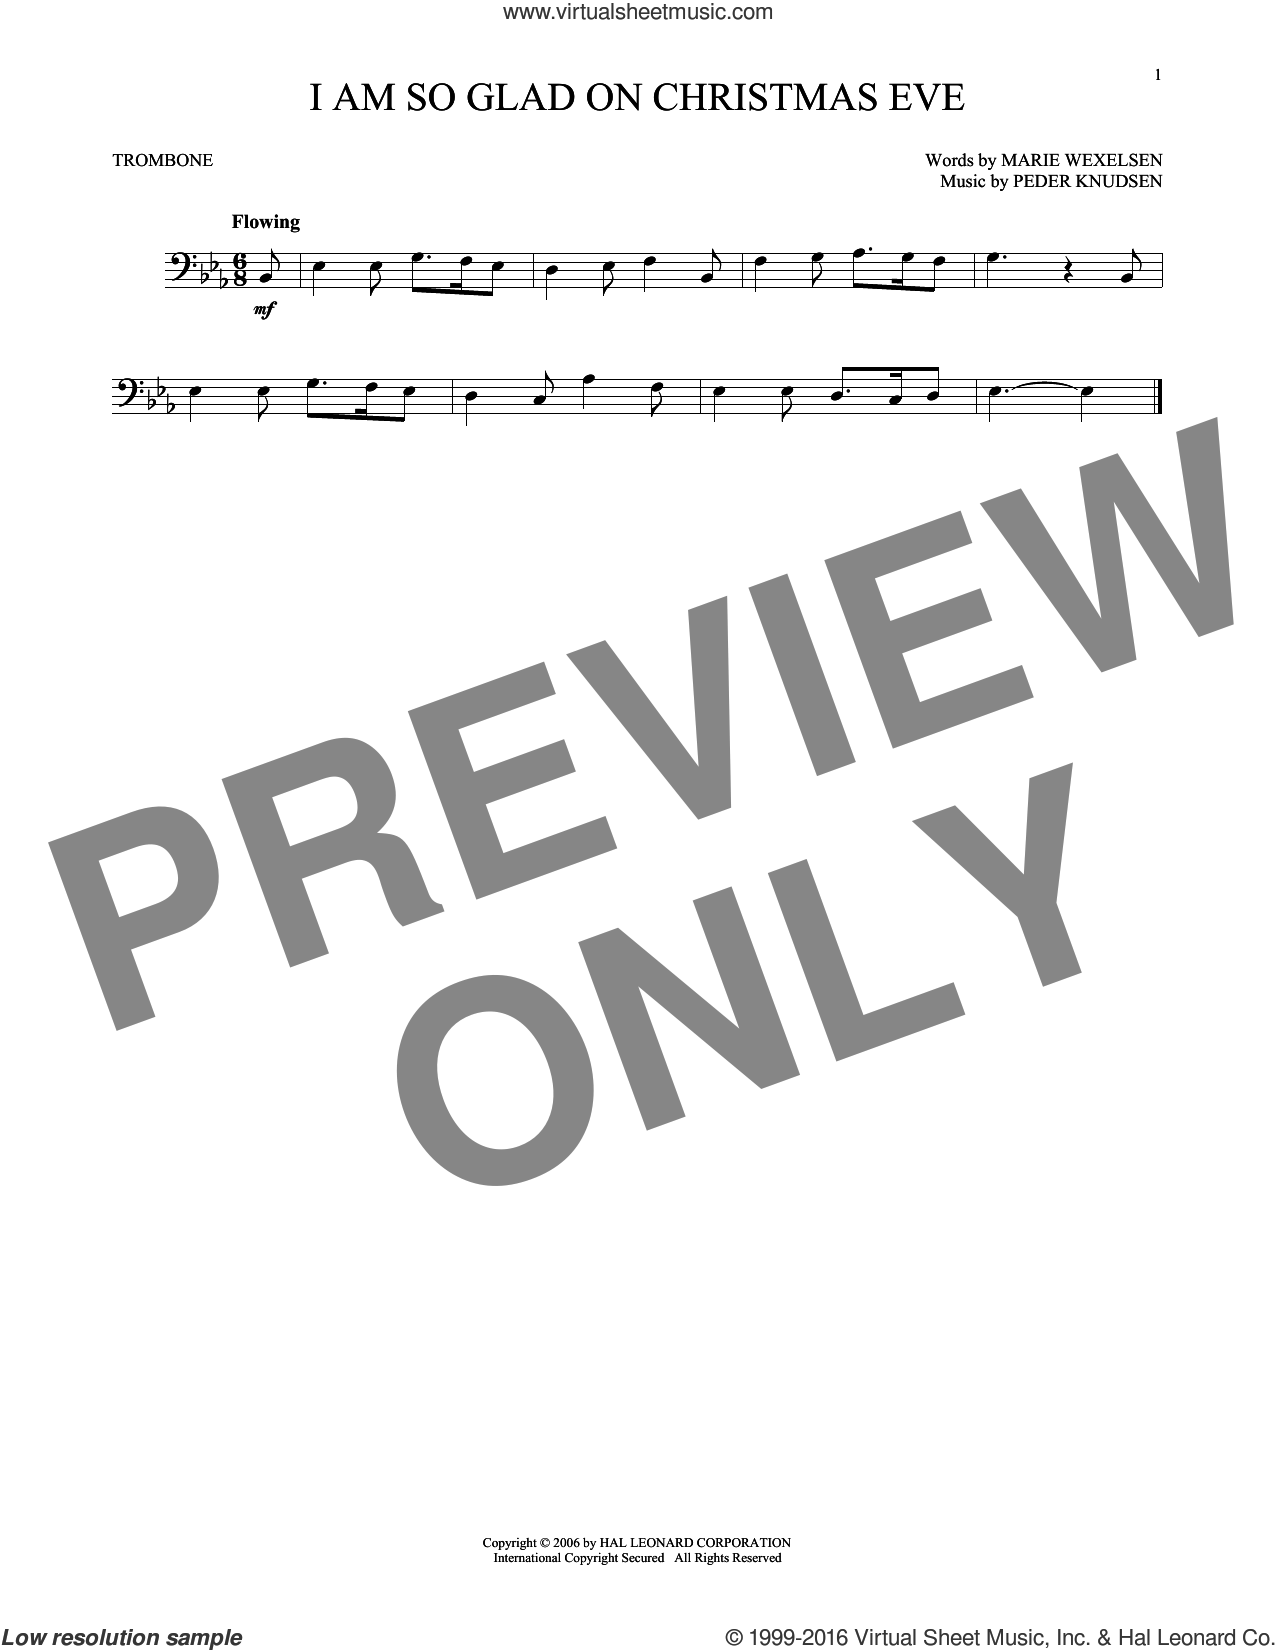 I Am So Glad On Christmas Eve sheet music for trombone solo by Marie Wexelsen. Score Image Preview.